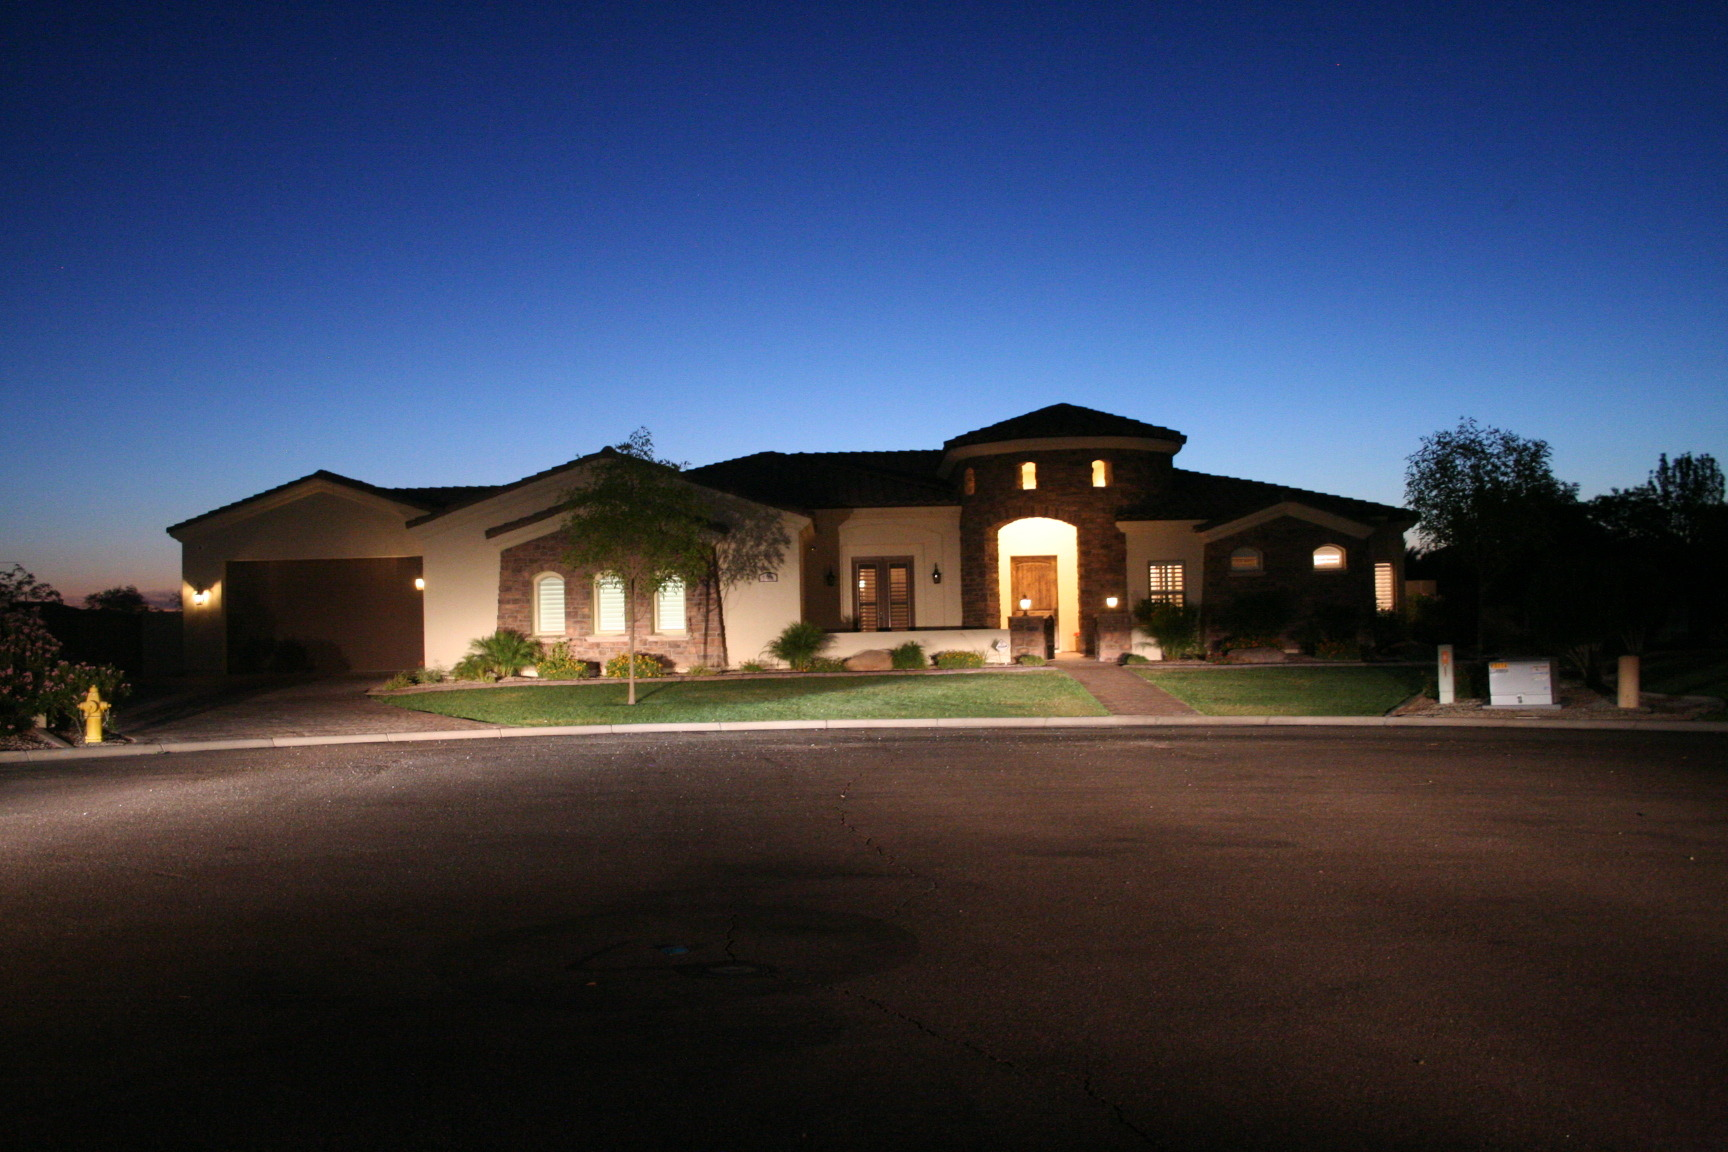 6 Bedroom 5 5 Bath Home In Gilbert Az With A Basement